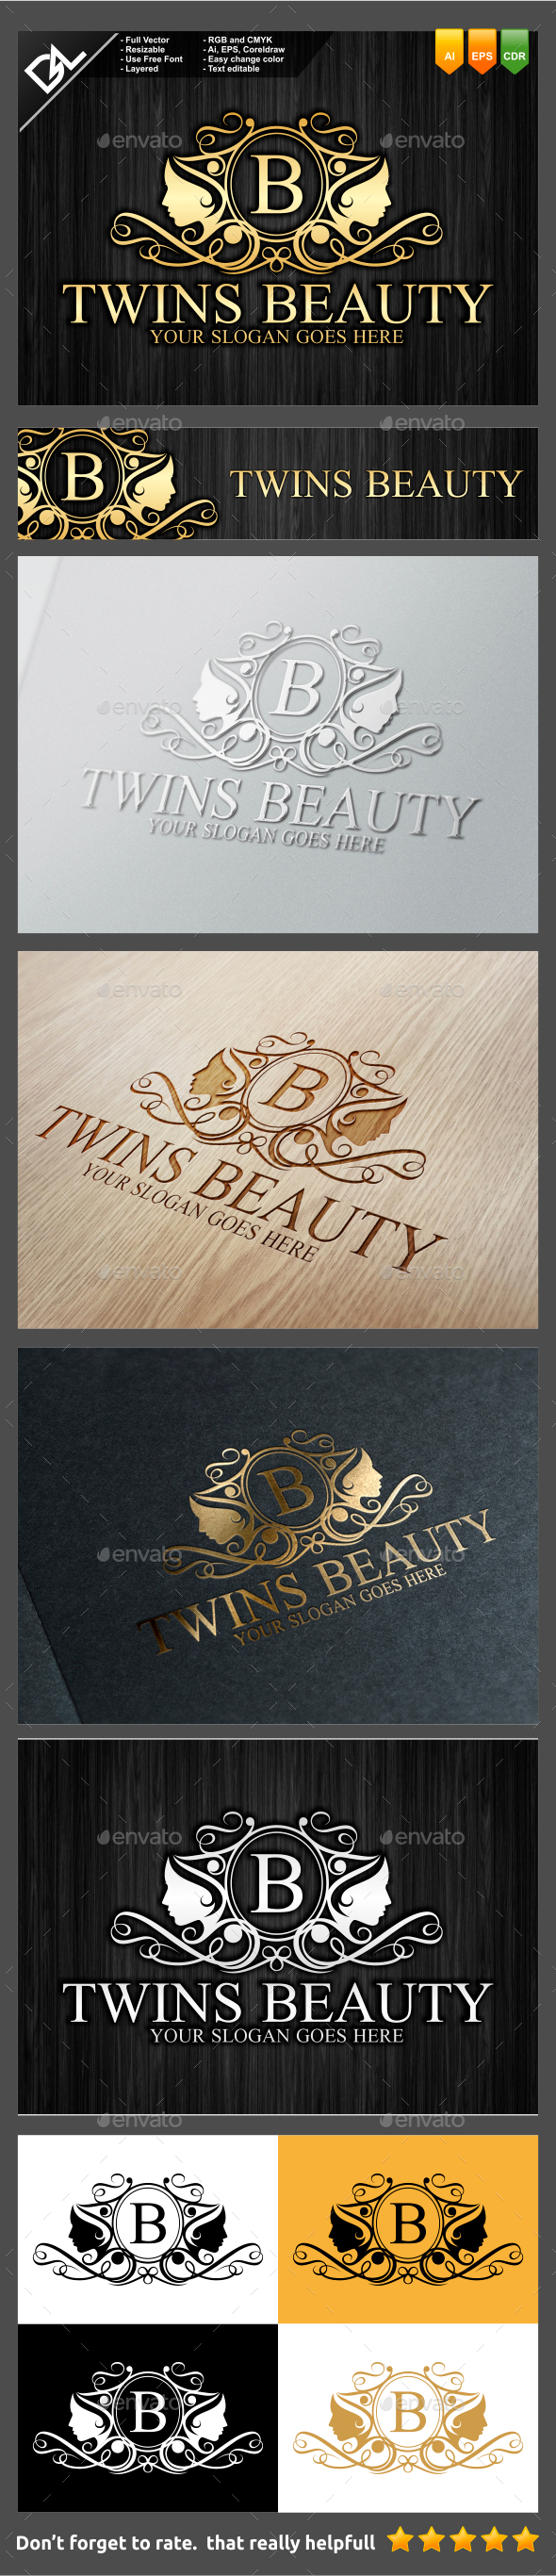 GraphicRiver Twins Beauty 9443566